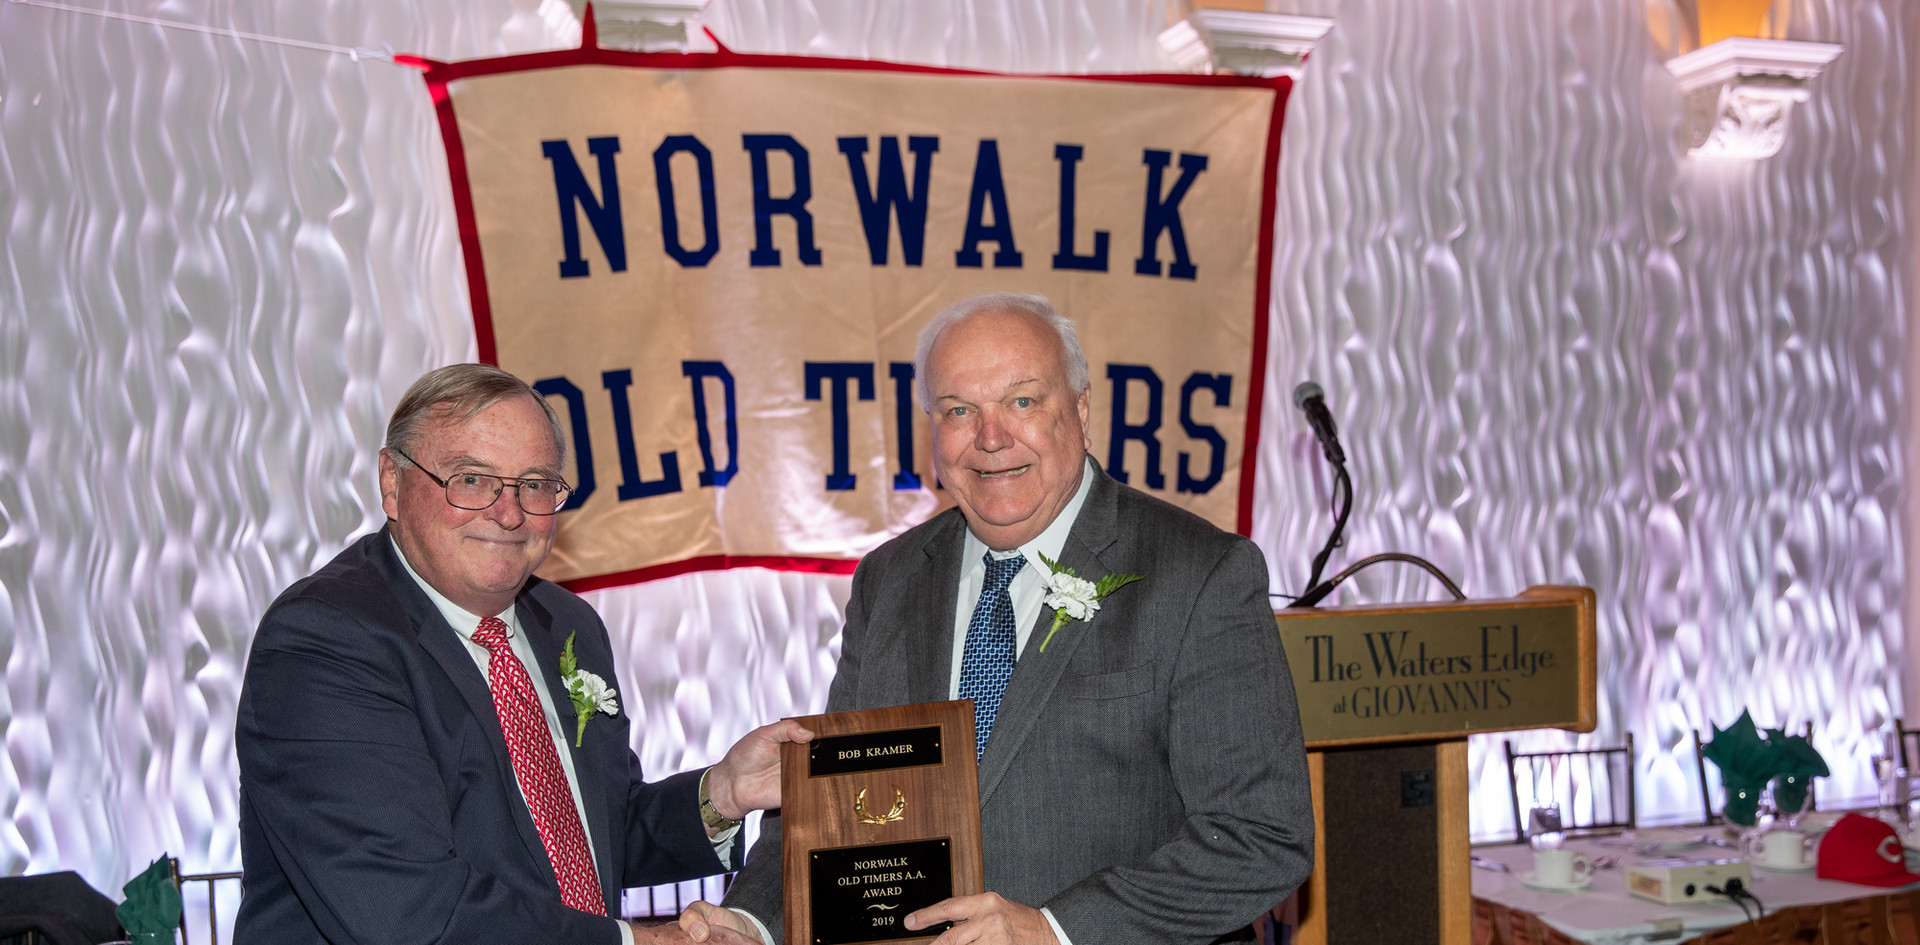 Bob Kramer receives his award-commemorating plaque from Norwalk Old Timers Association president Jack Couch.  (photo by Josh Molaver)